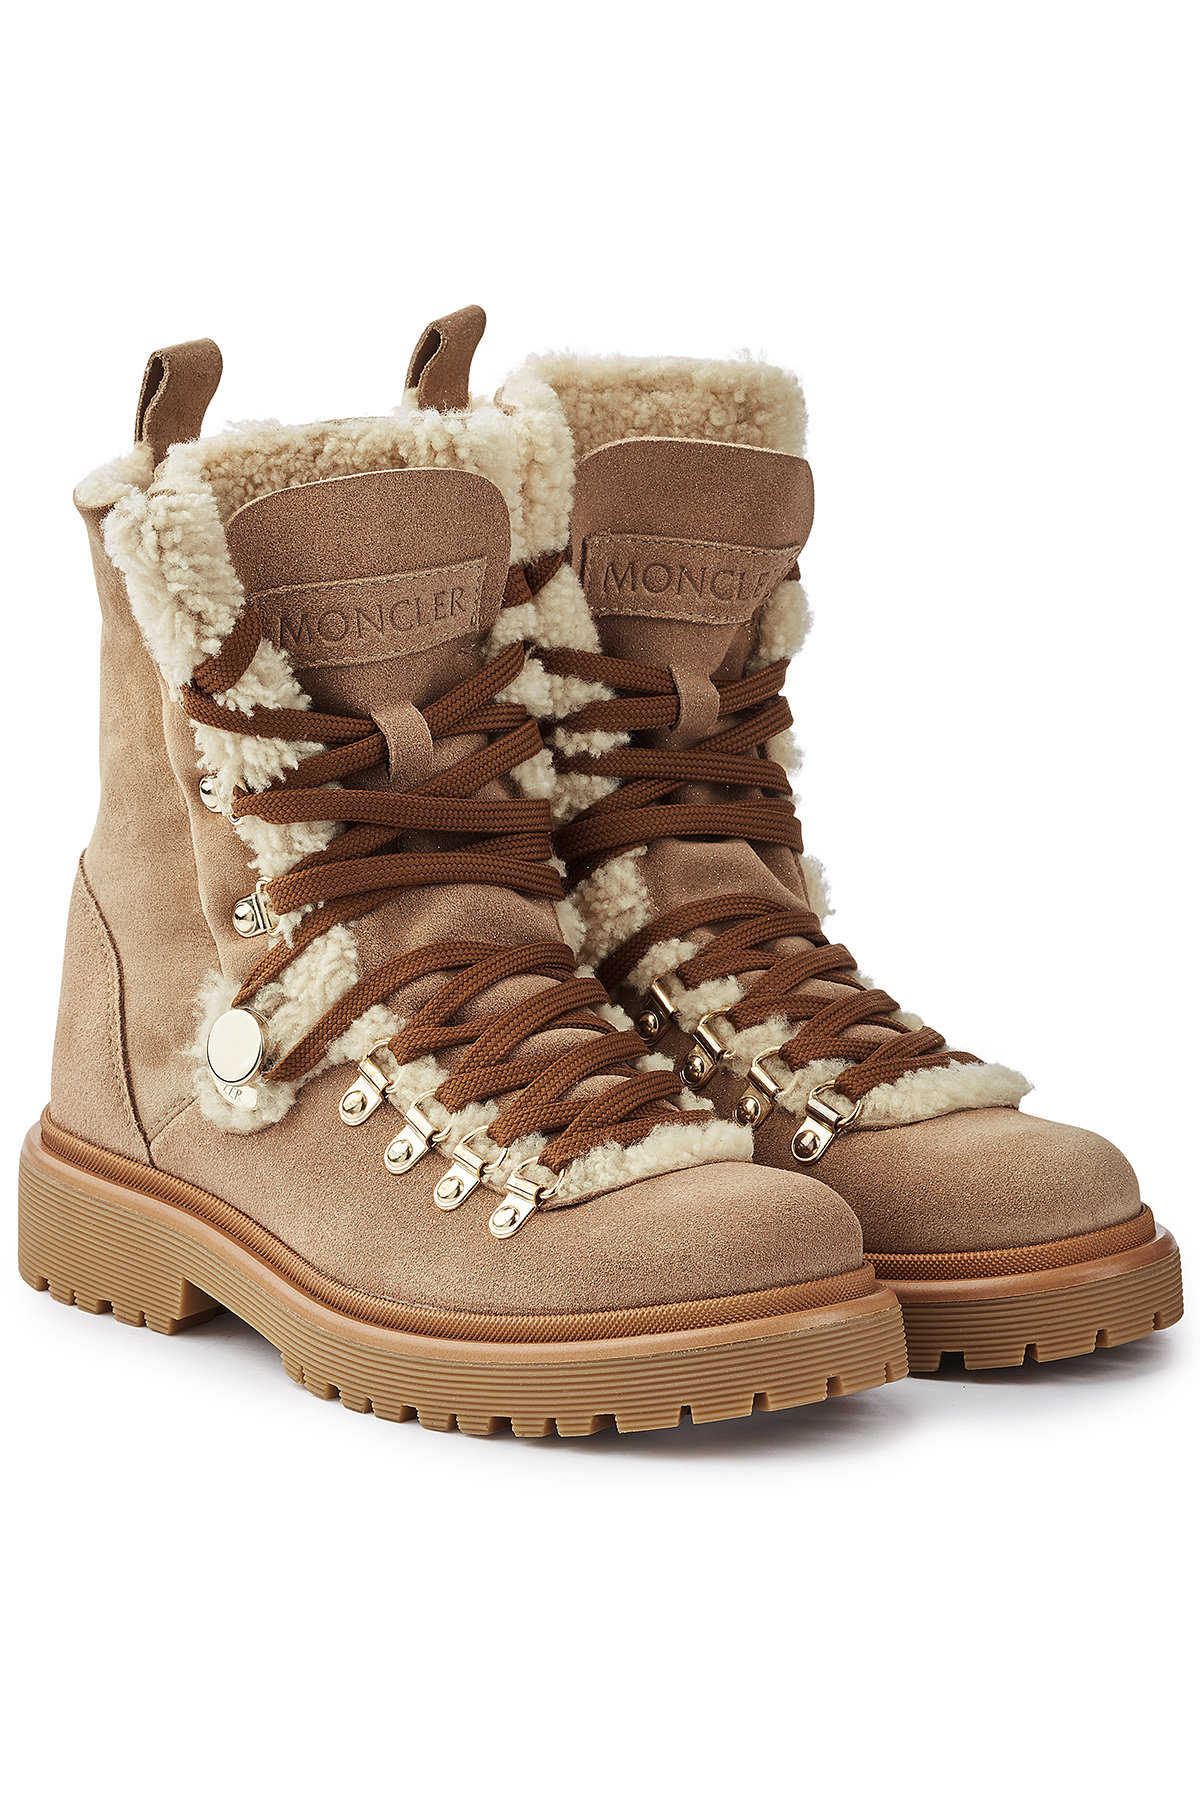 Moncler Berenice Suede Ankle Boots with